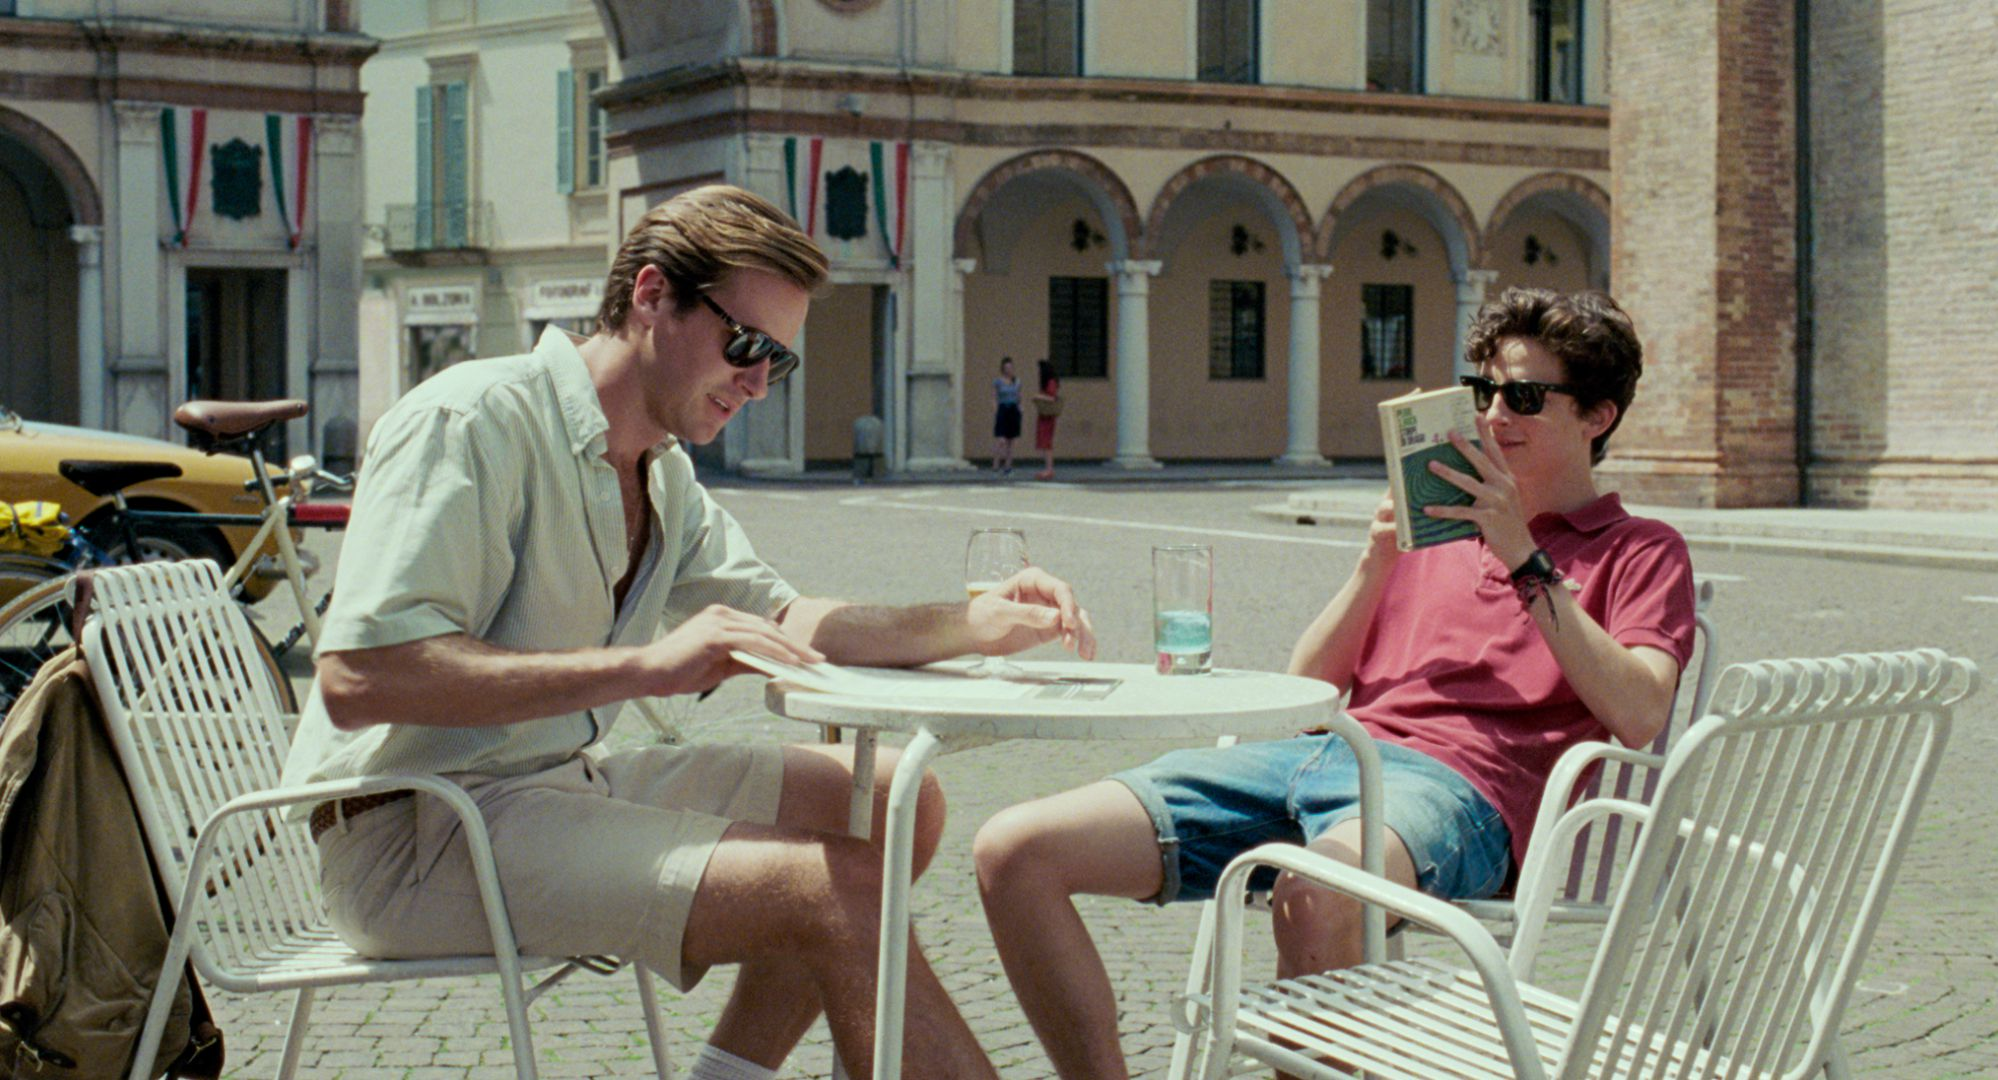 Find Me, the Call Me By Your Name sequel, is tender, melancholy, and deeply flawed